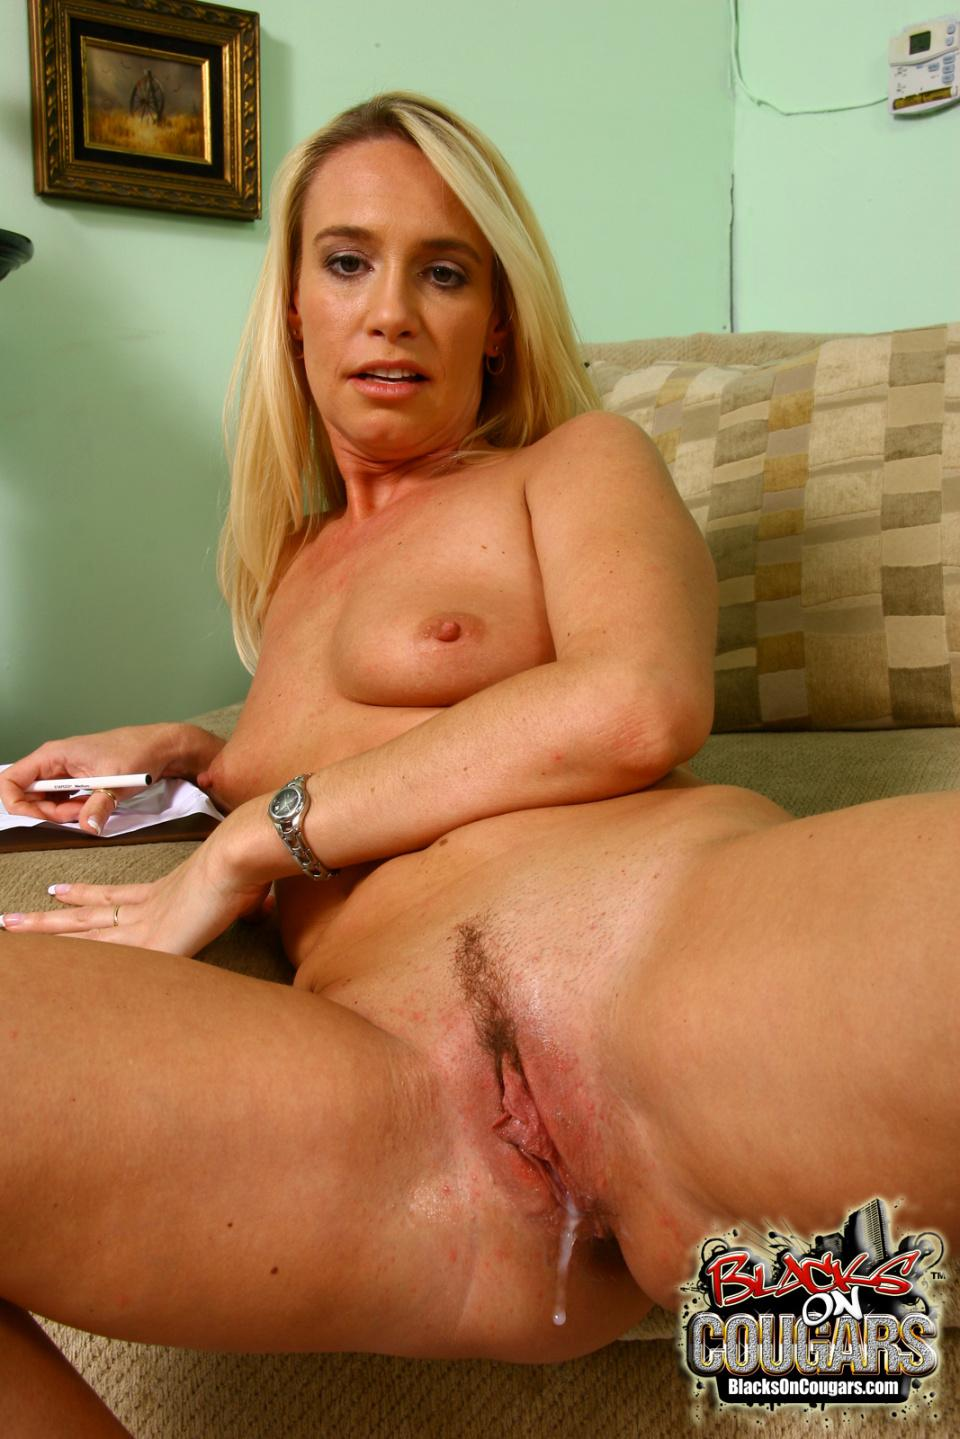 Nude Photos Of Cougars hot cougar mom naked sex - new porn.